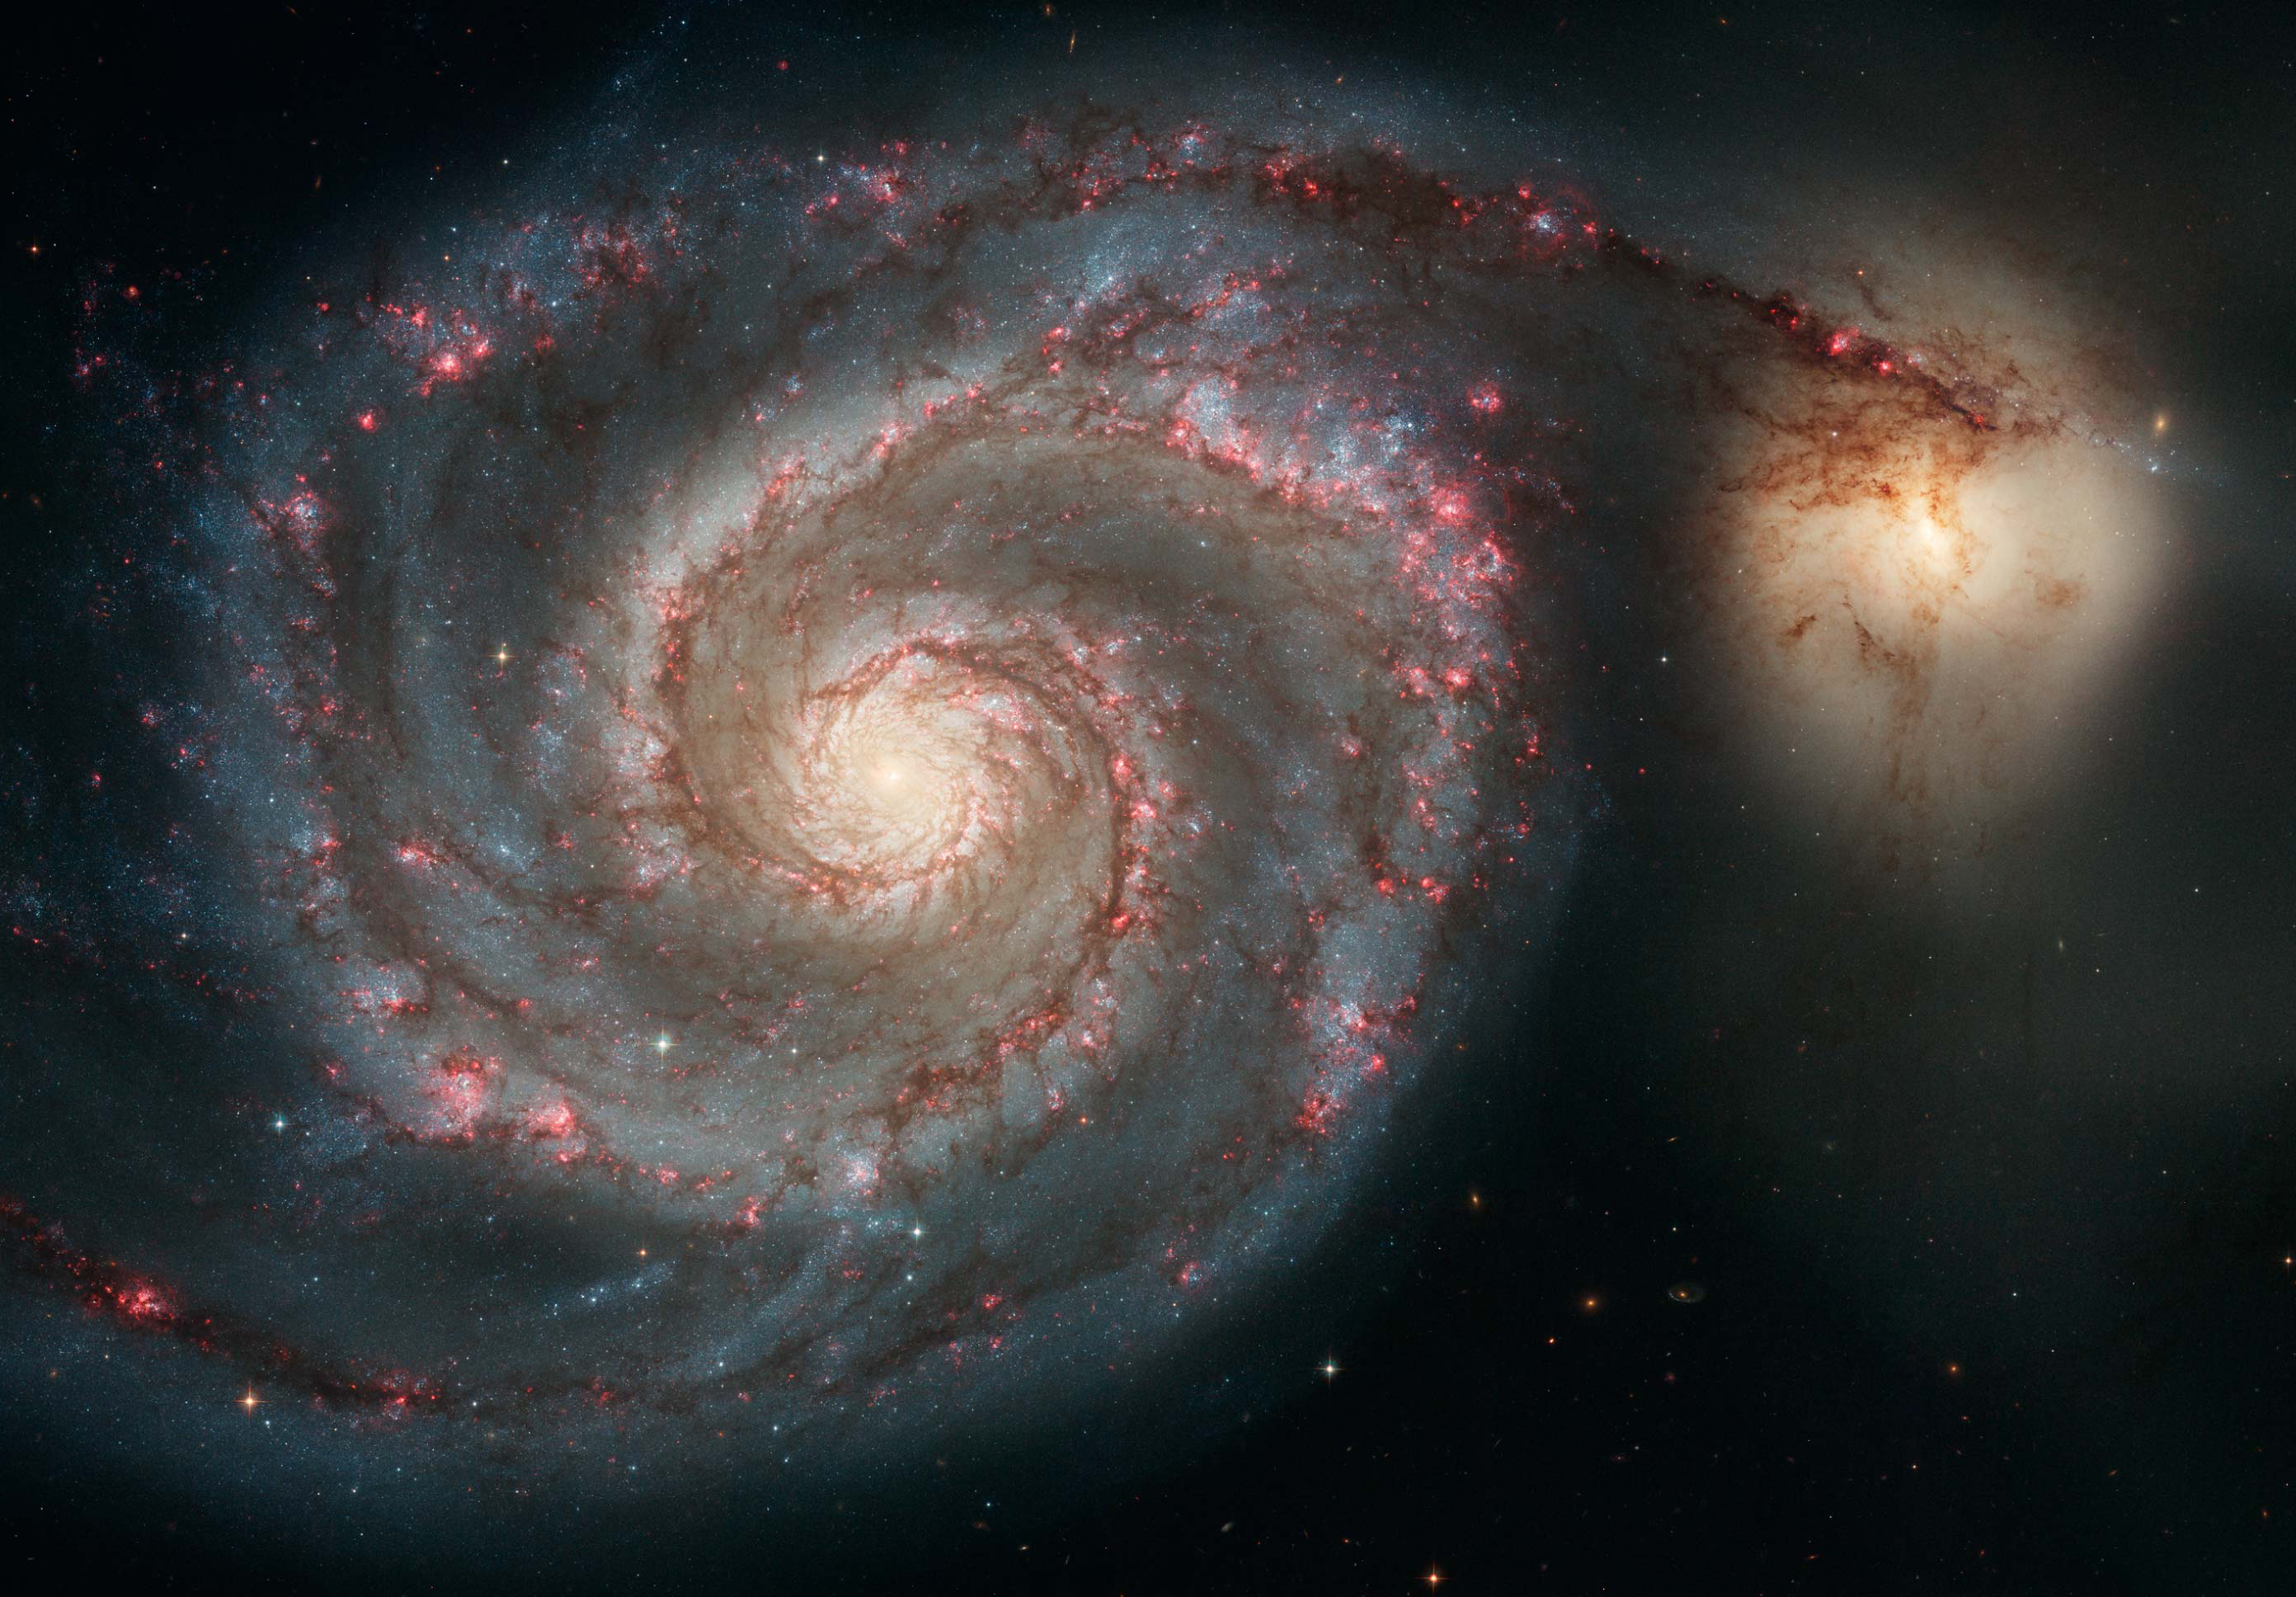 Whirlpool galaxy photo